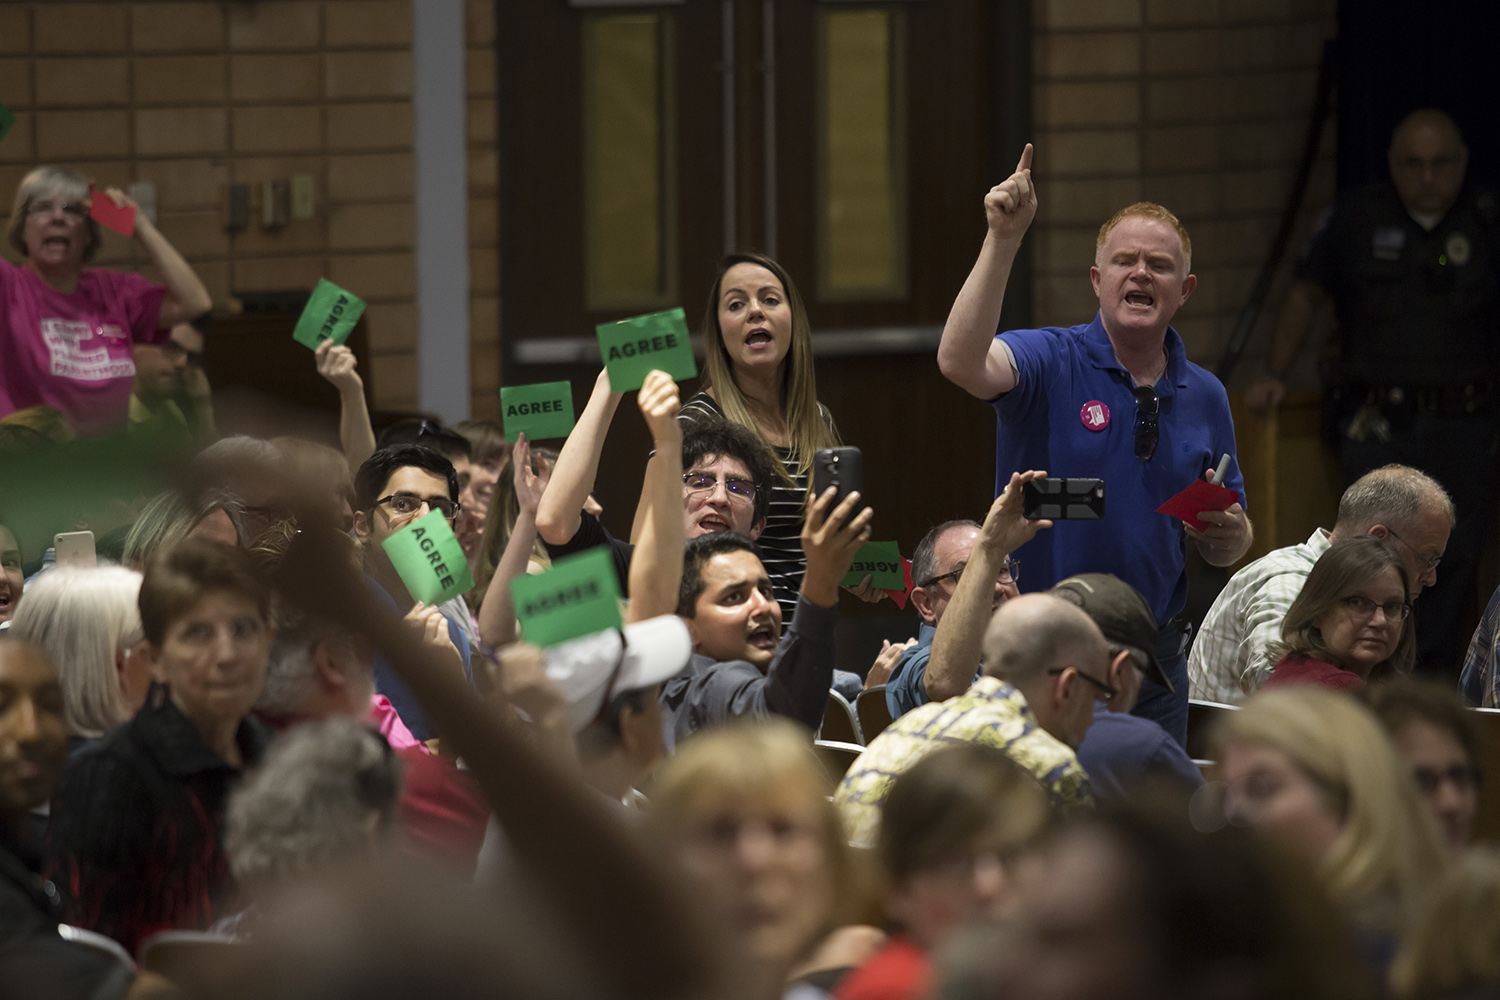 Constituents react at a town hall held by U.S. Rep. John Culberson, R-Houston, on March 25, 2017.